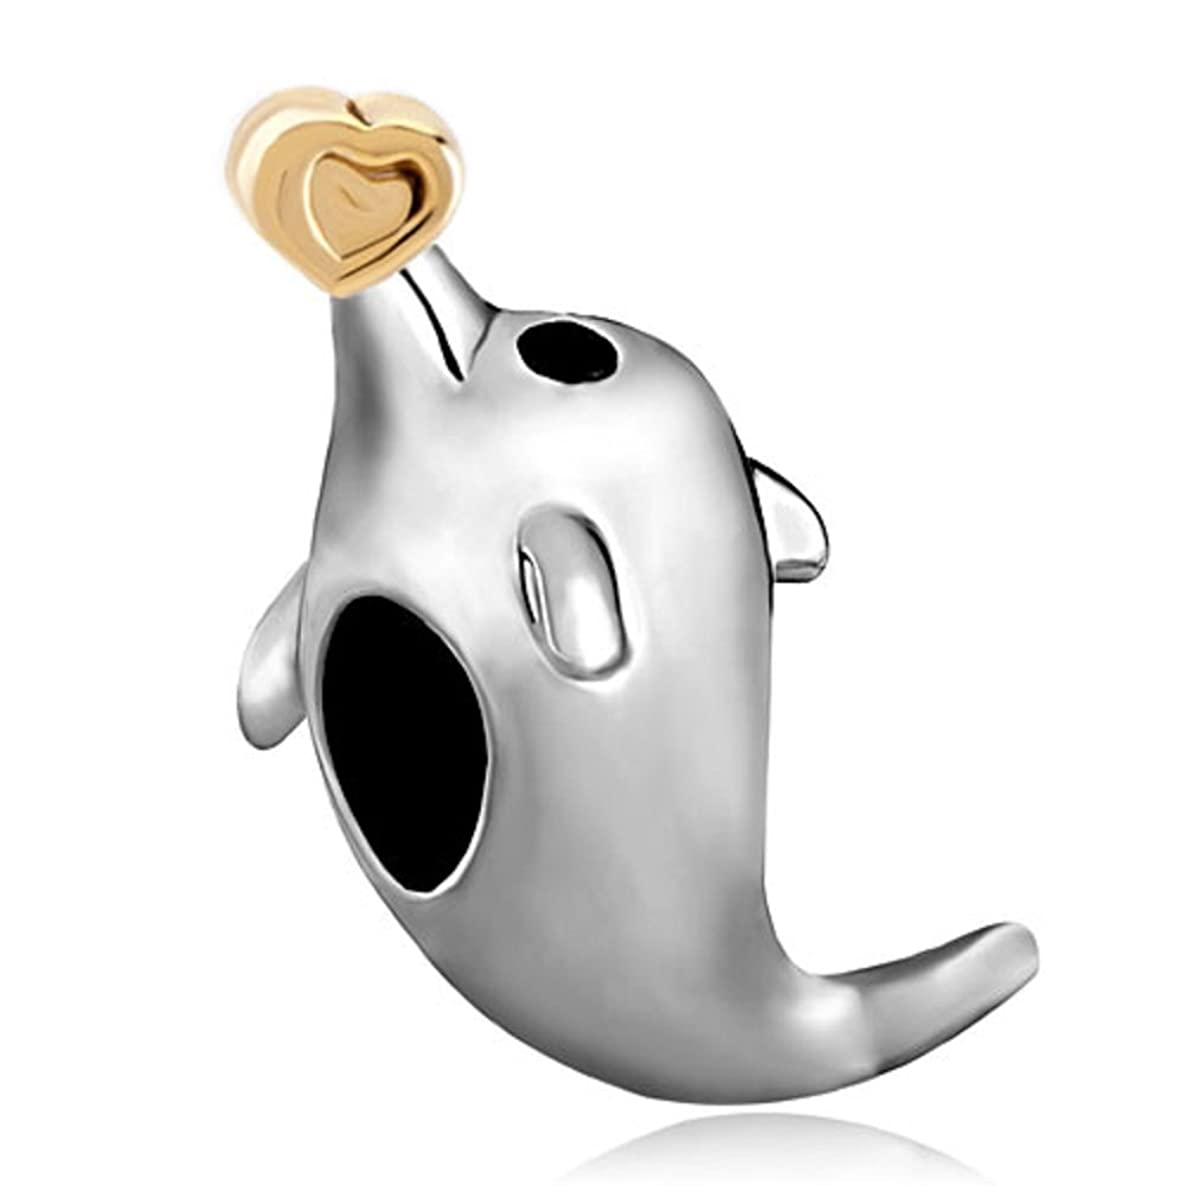 ReisJewelry Dolphin Hold Heart Charm Animal Bead For Bracelet ruly6389282221